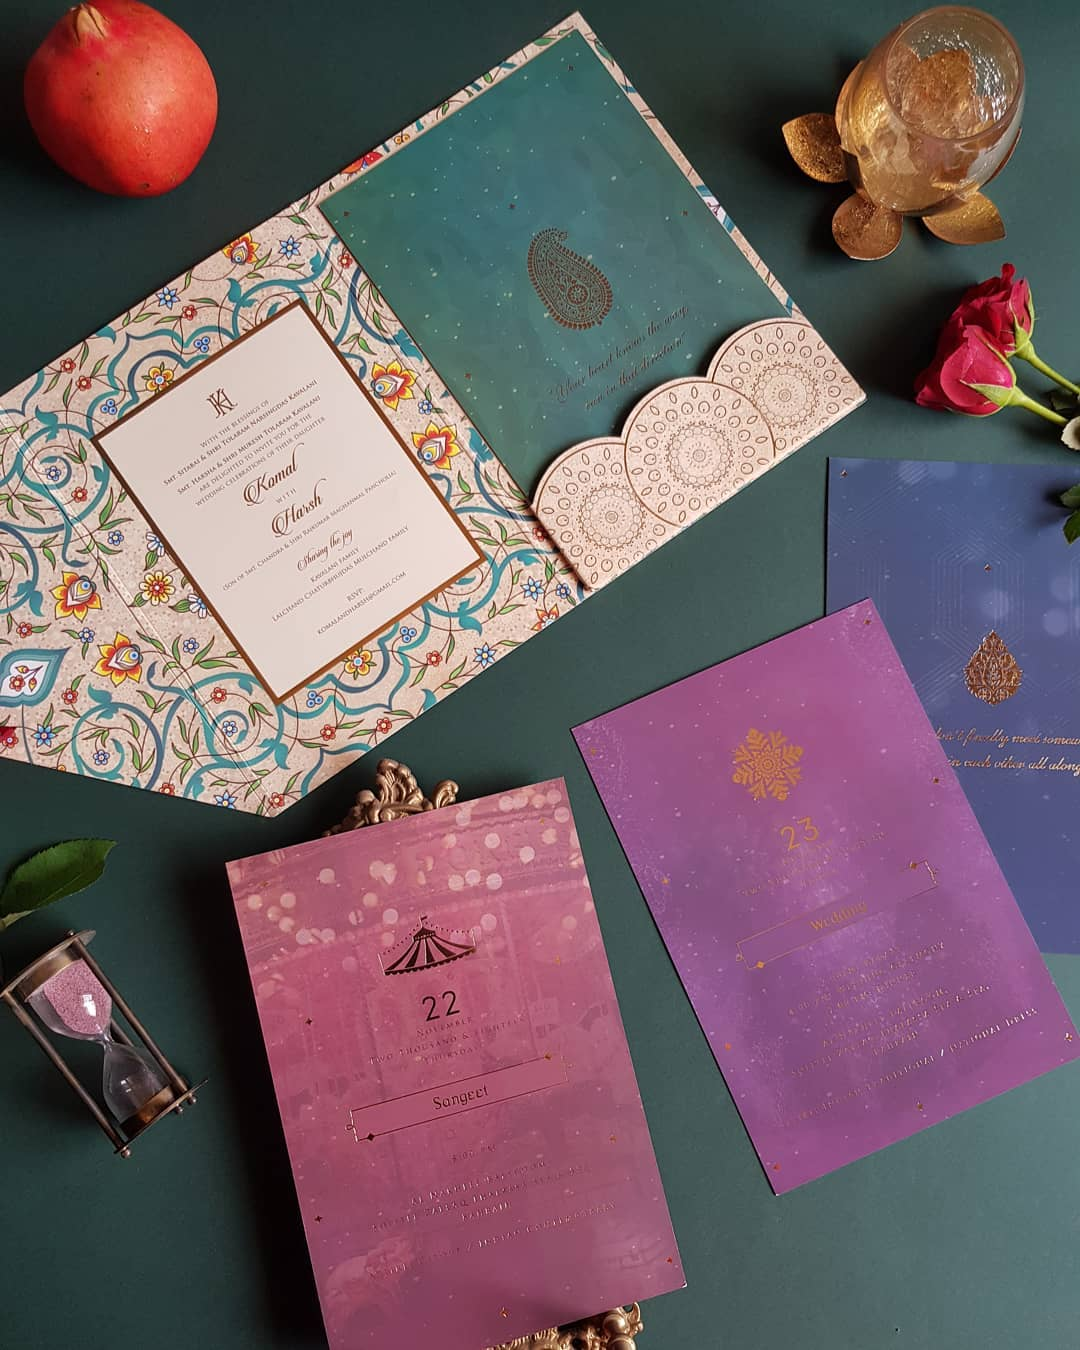 indian wedding cards design - with decor elements and arabic motifs incorporated in a destination wedding invite in teal, wisteria and purple shades